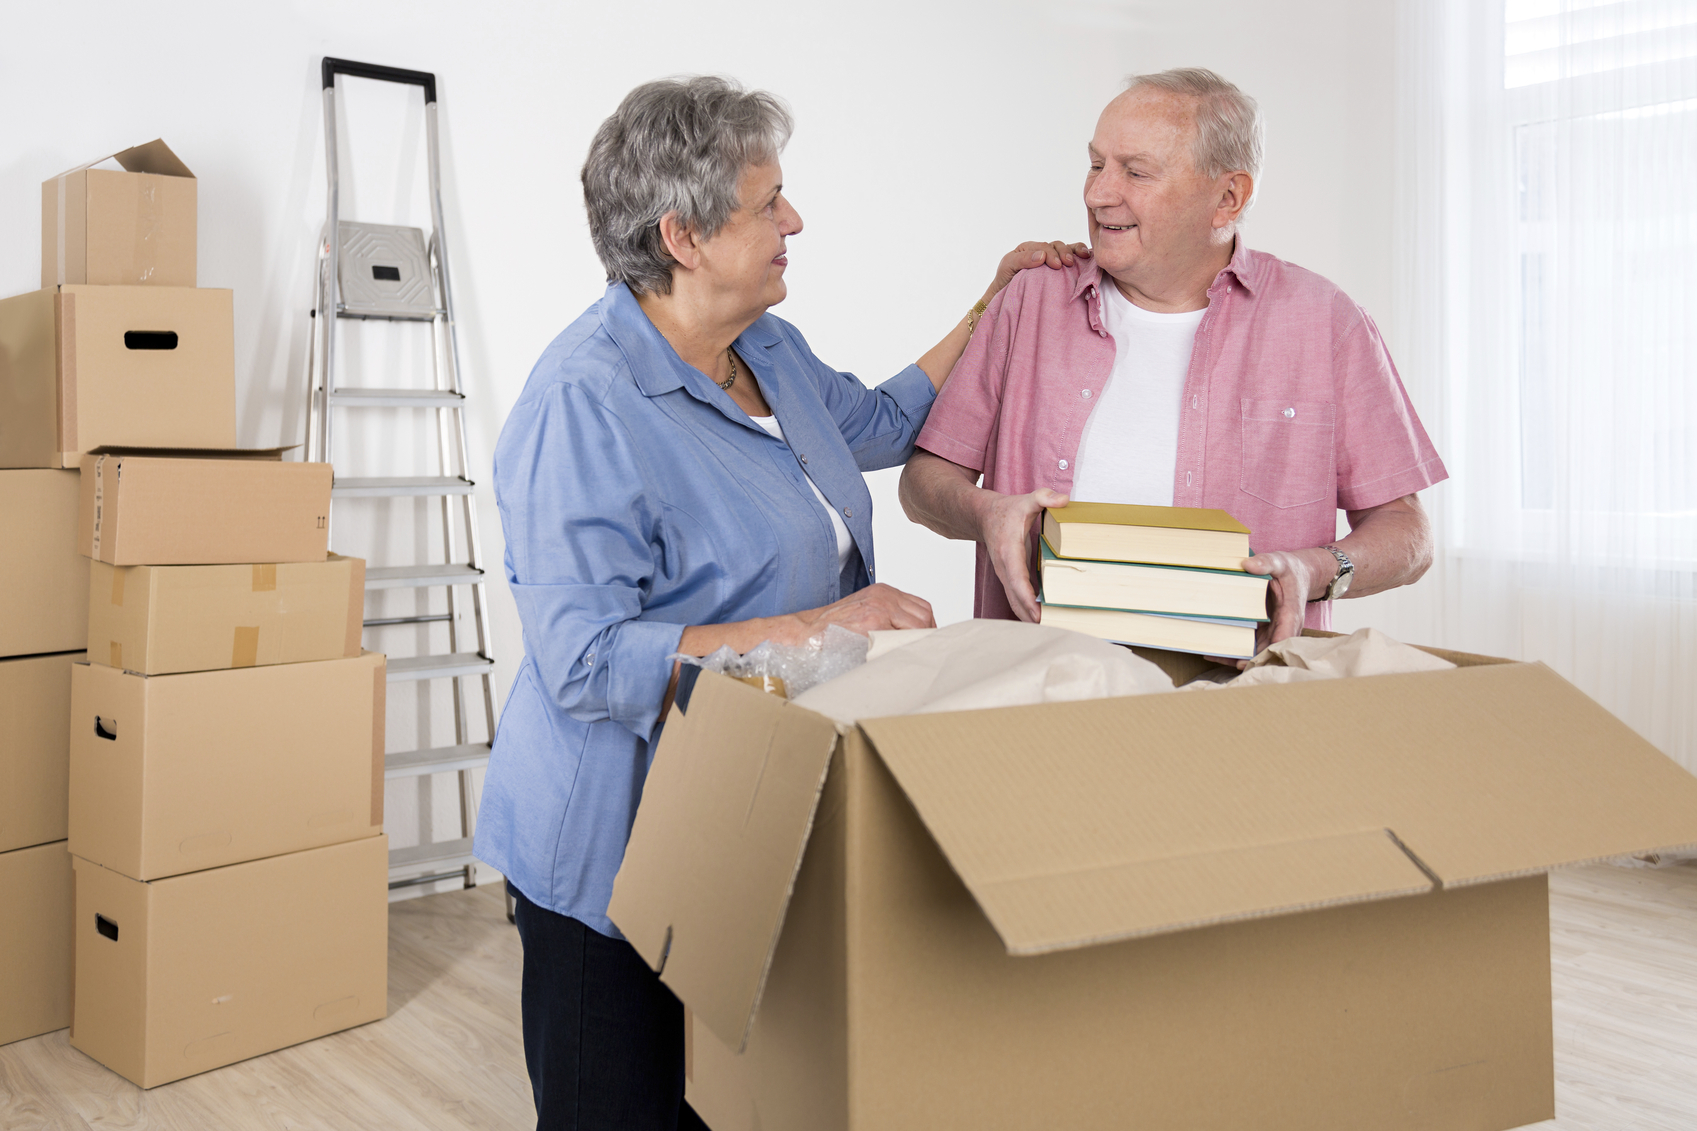 SENIOR MOVE COMPANY